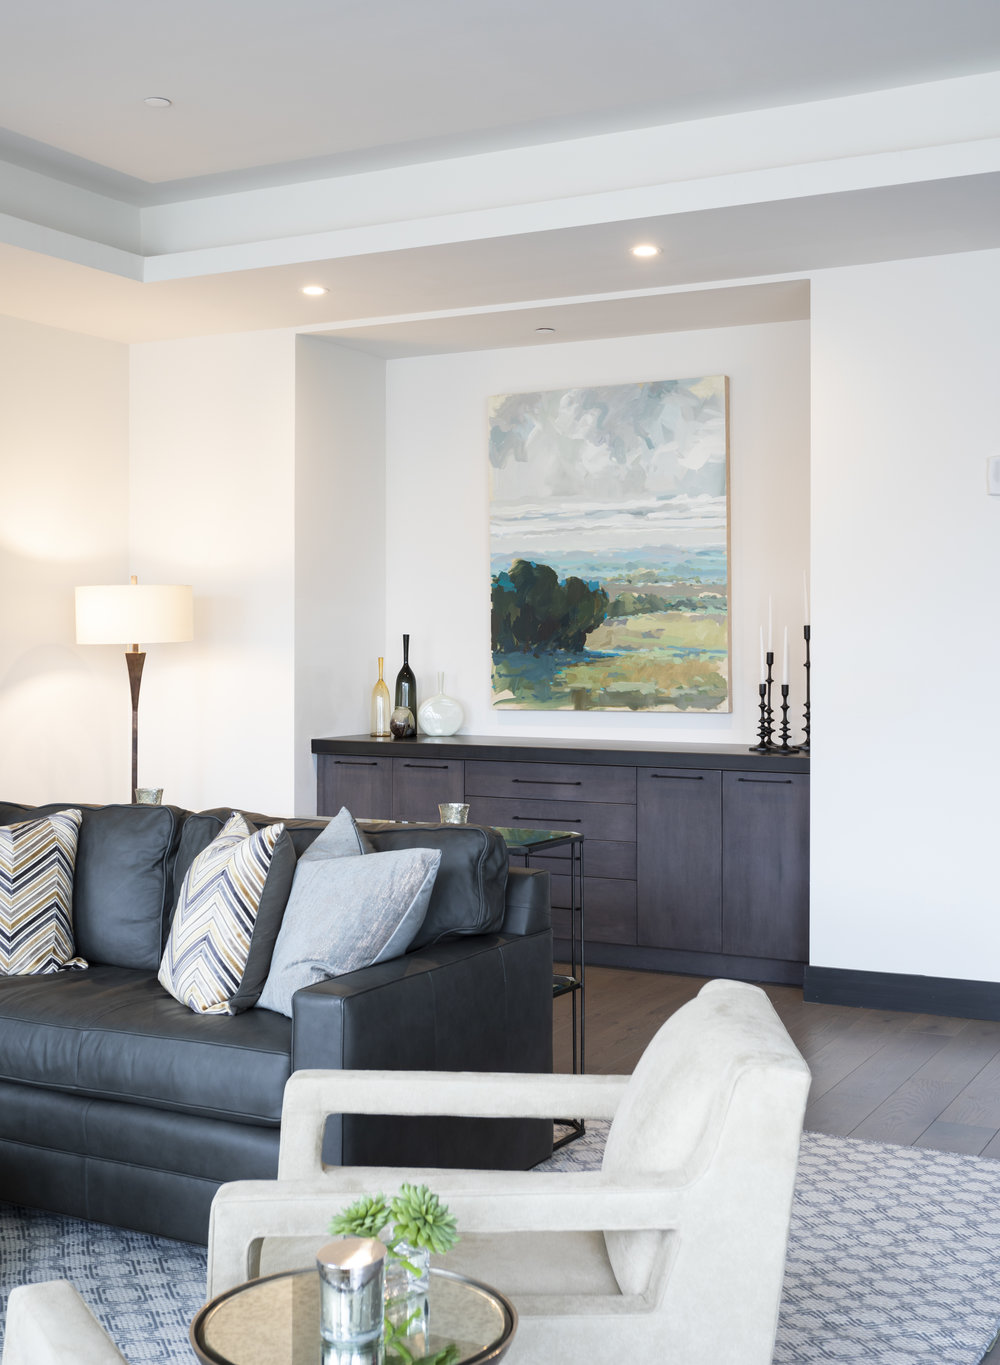 An Annie Koelle Landscape give this room warmth. Commissioned for this space by Chisana Hice-Smith with In Site Designs for a private collector.